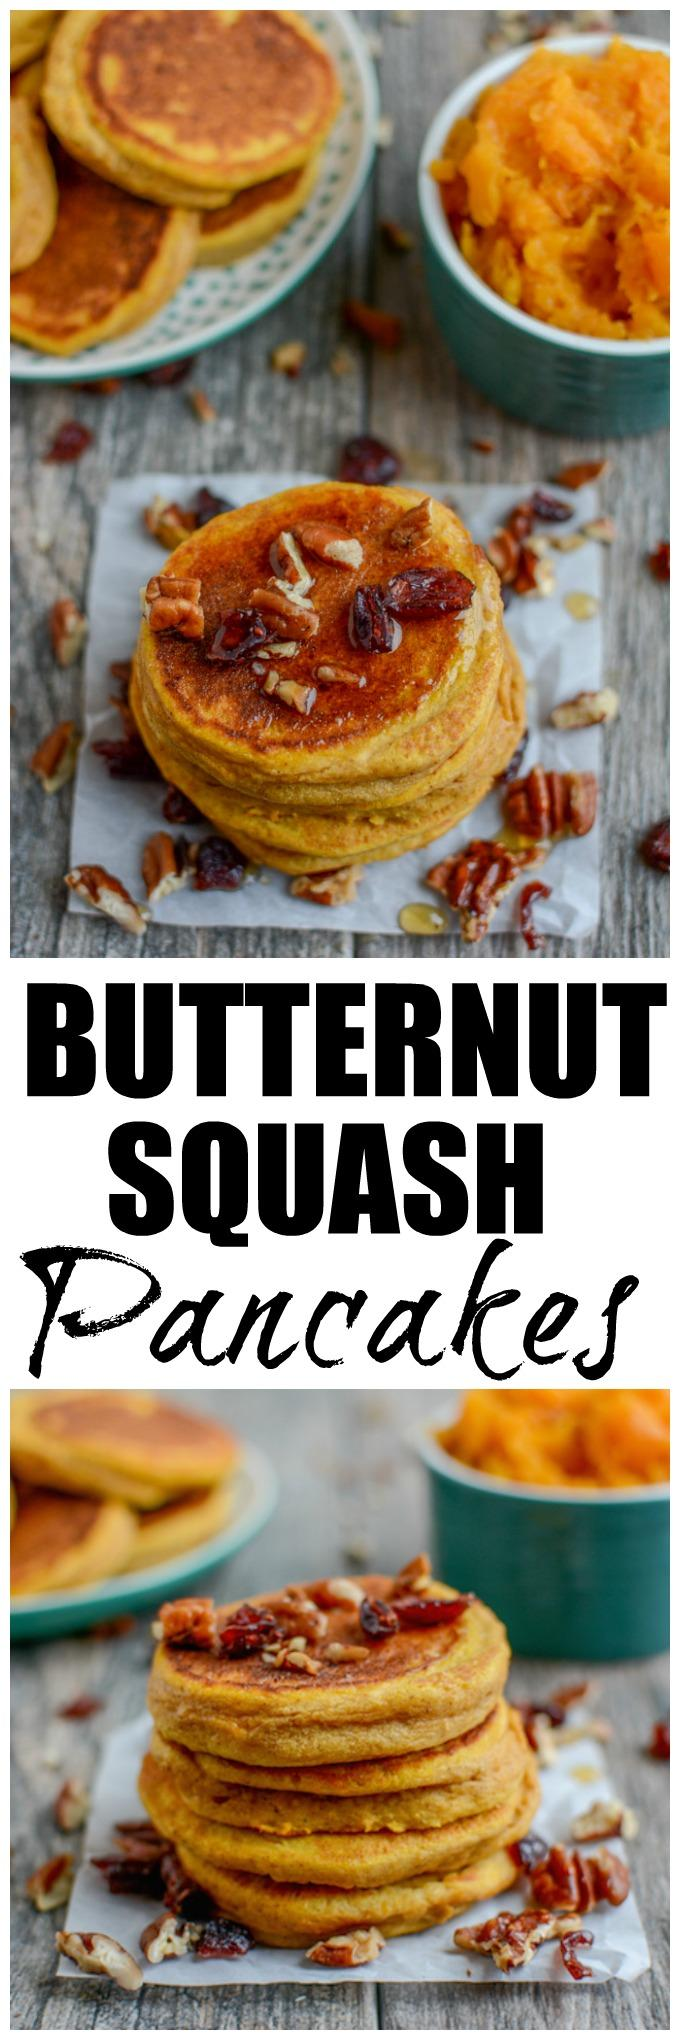 This Butternut Squash Pancakes recipe is an easy way to add some extra vegetables to breakfast! Made with just a few ingredients, they can be made ahead of time and reheated and also make a great, healthy snack!